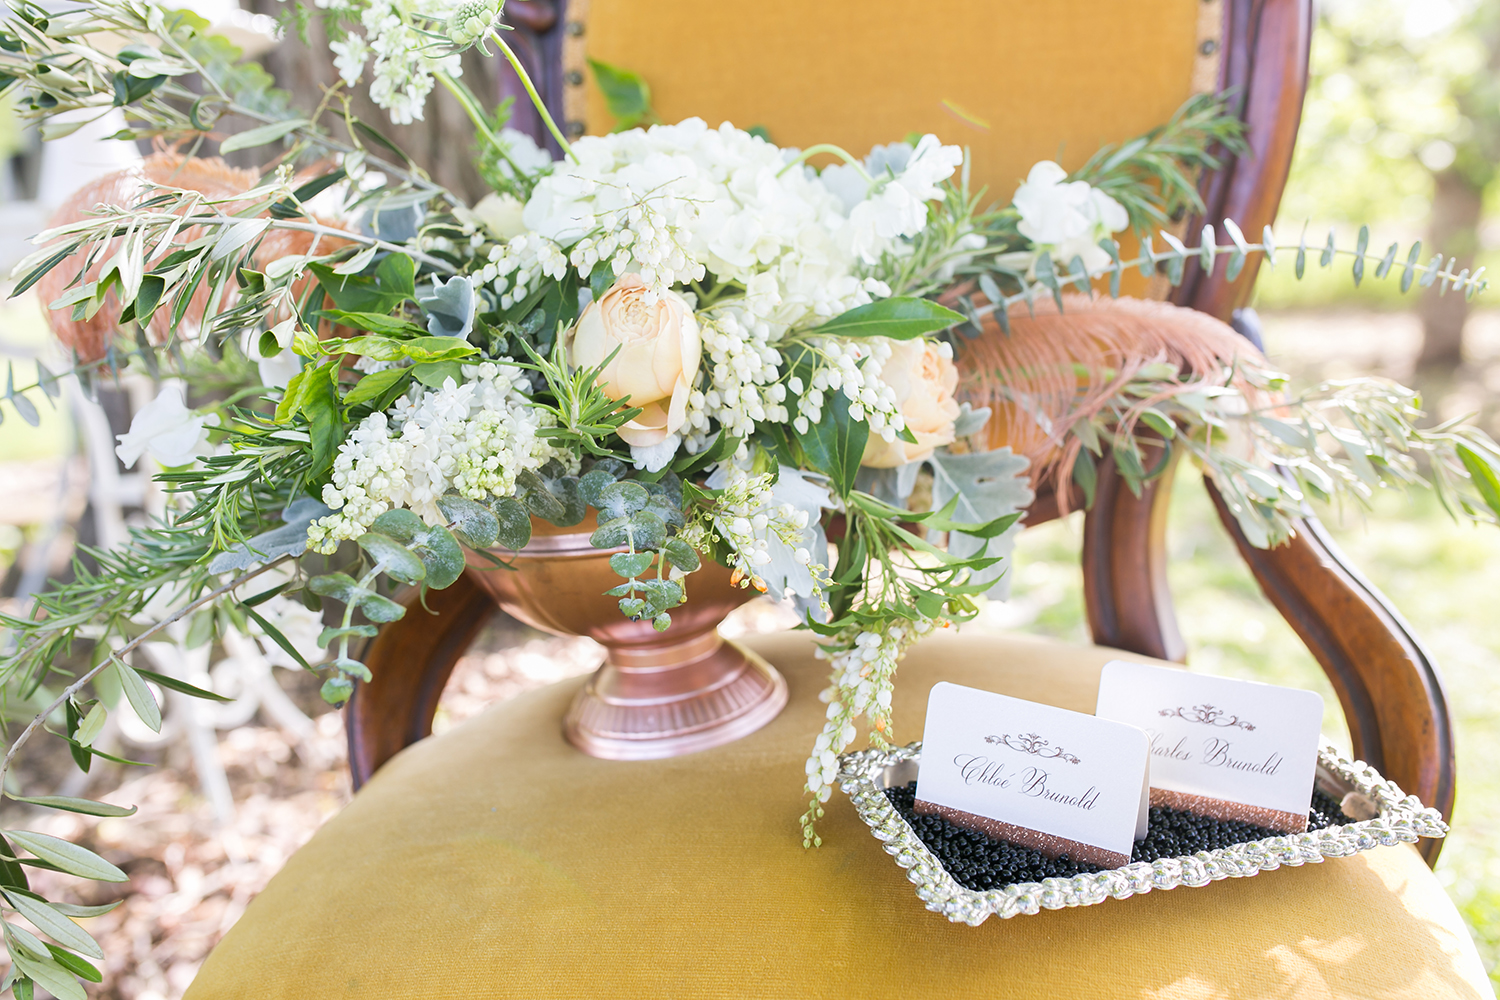 hickory-hill-orchards-wedding-candis-floral-creations-8